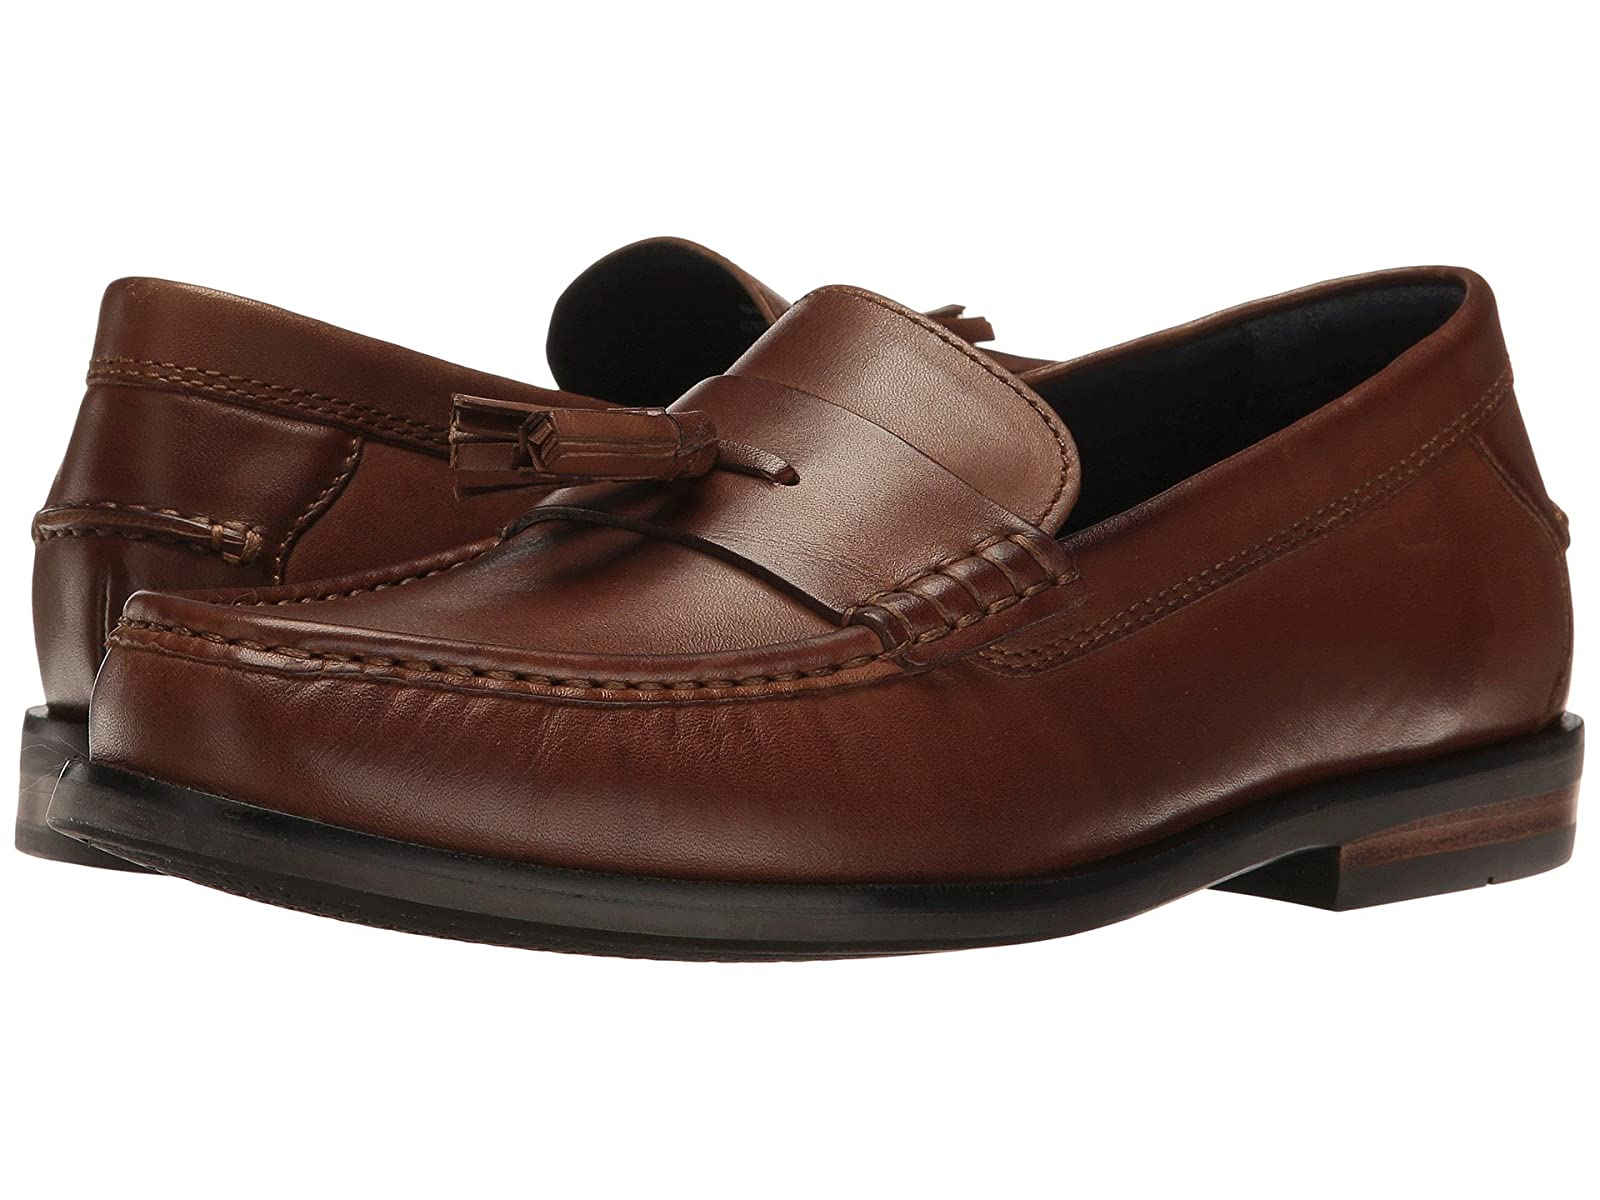 Cole Haan Pinch Friday Tassel ContemporaryAtmospheric grades have affordable shoes